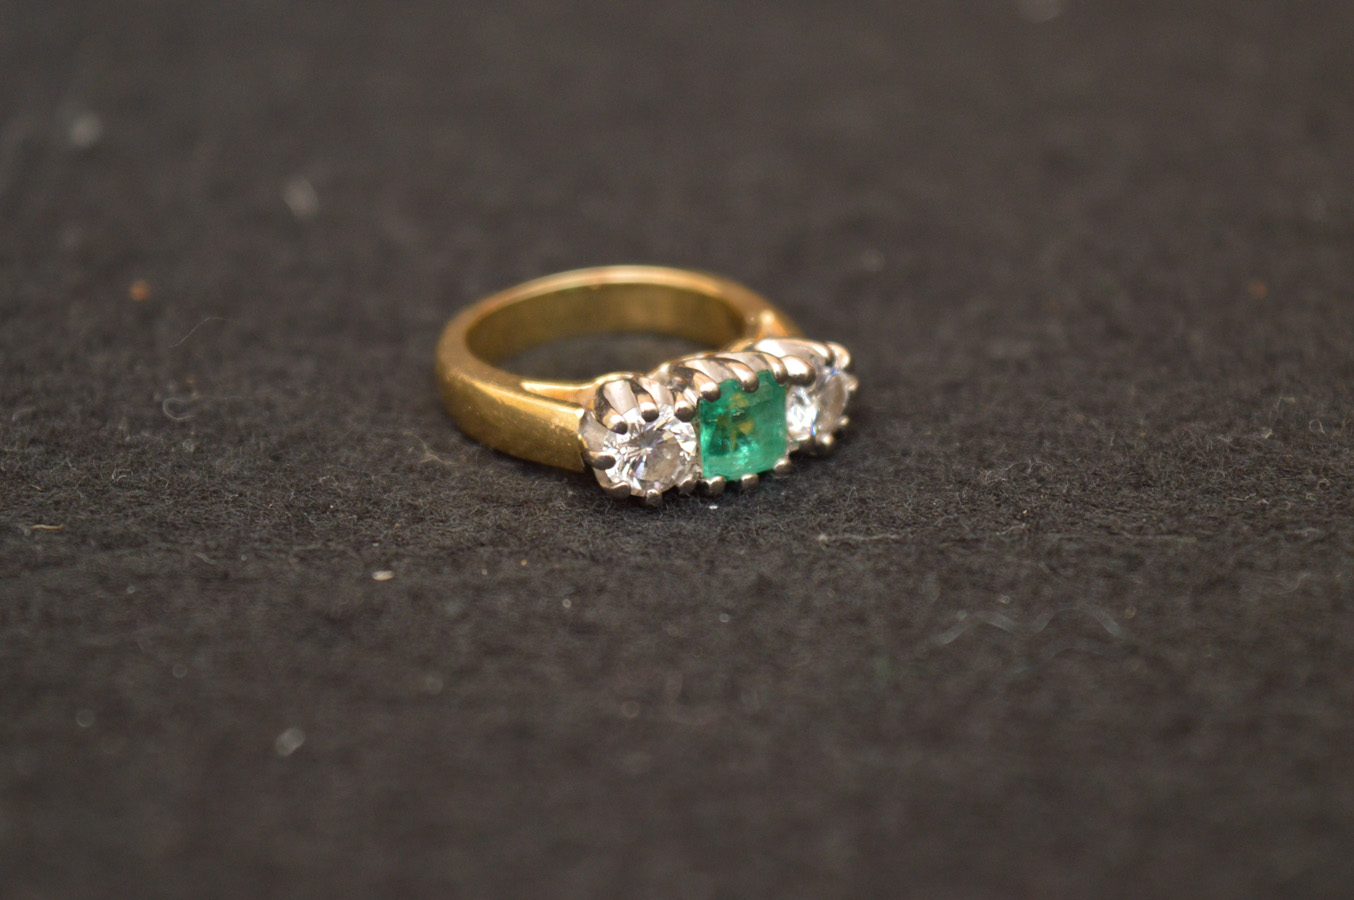 Lot 510 - A Very Nice 18ct Gold Emerald and Diamond Ring